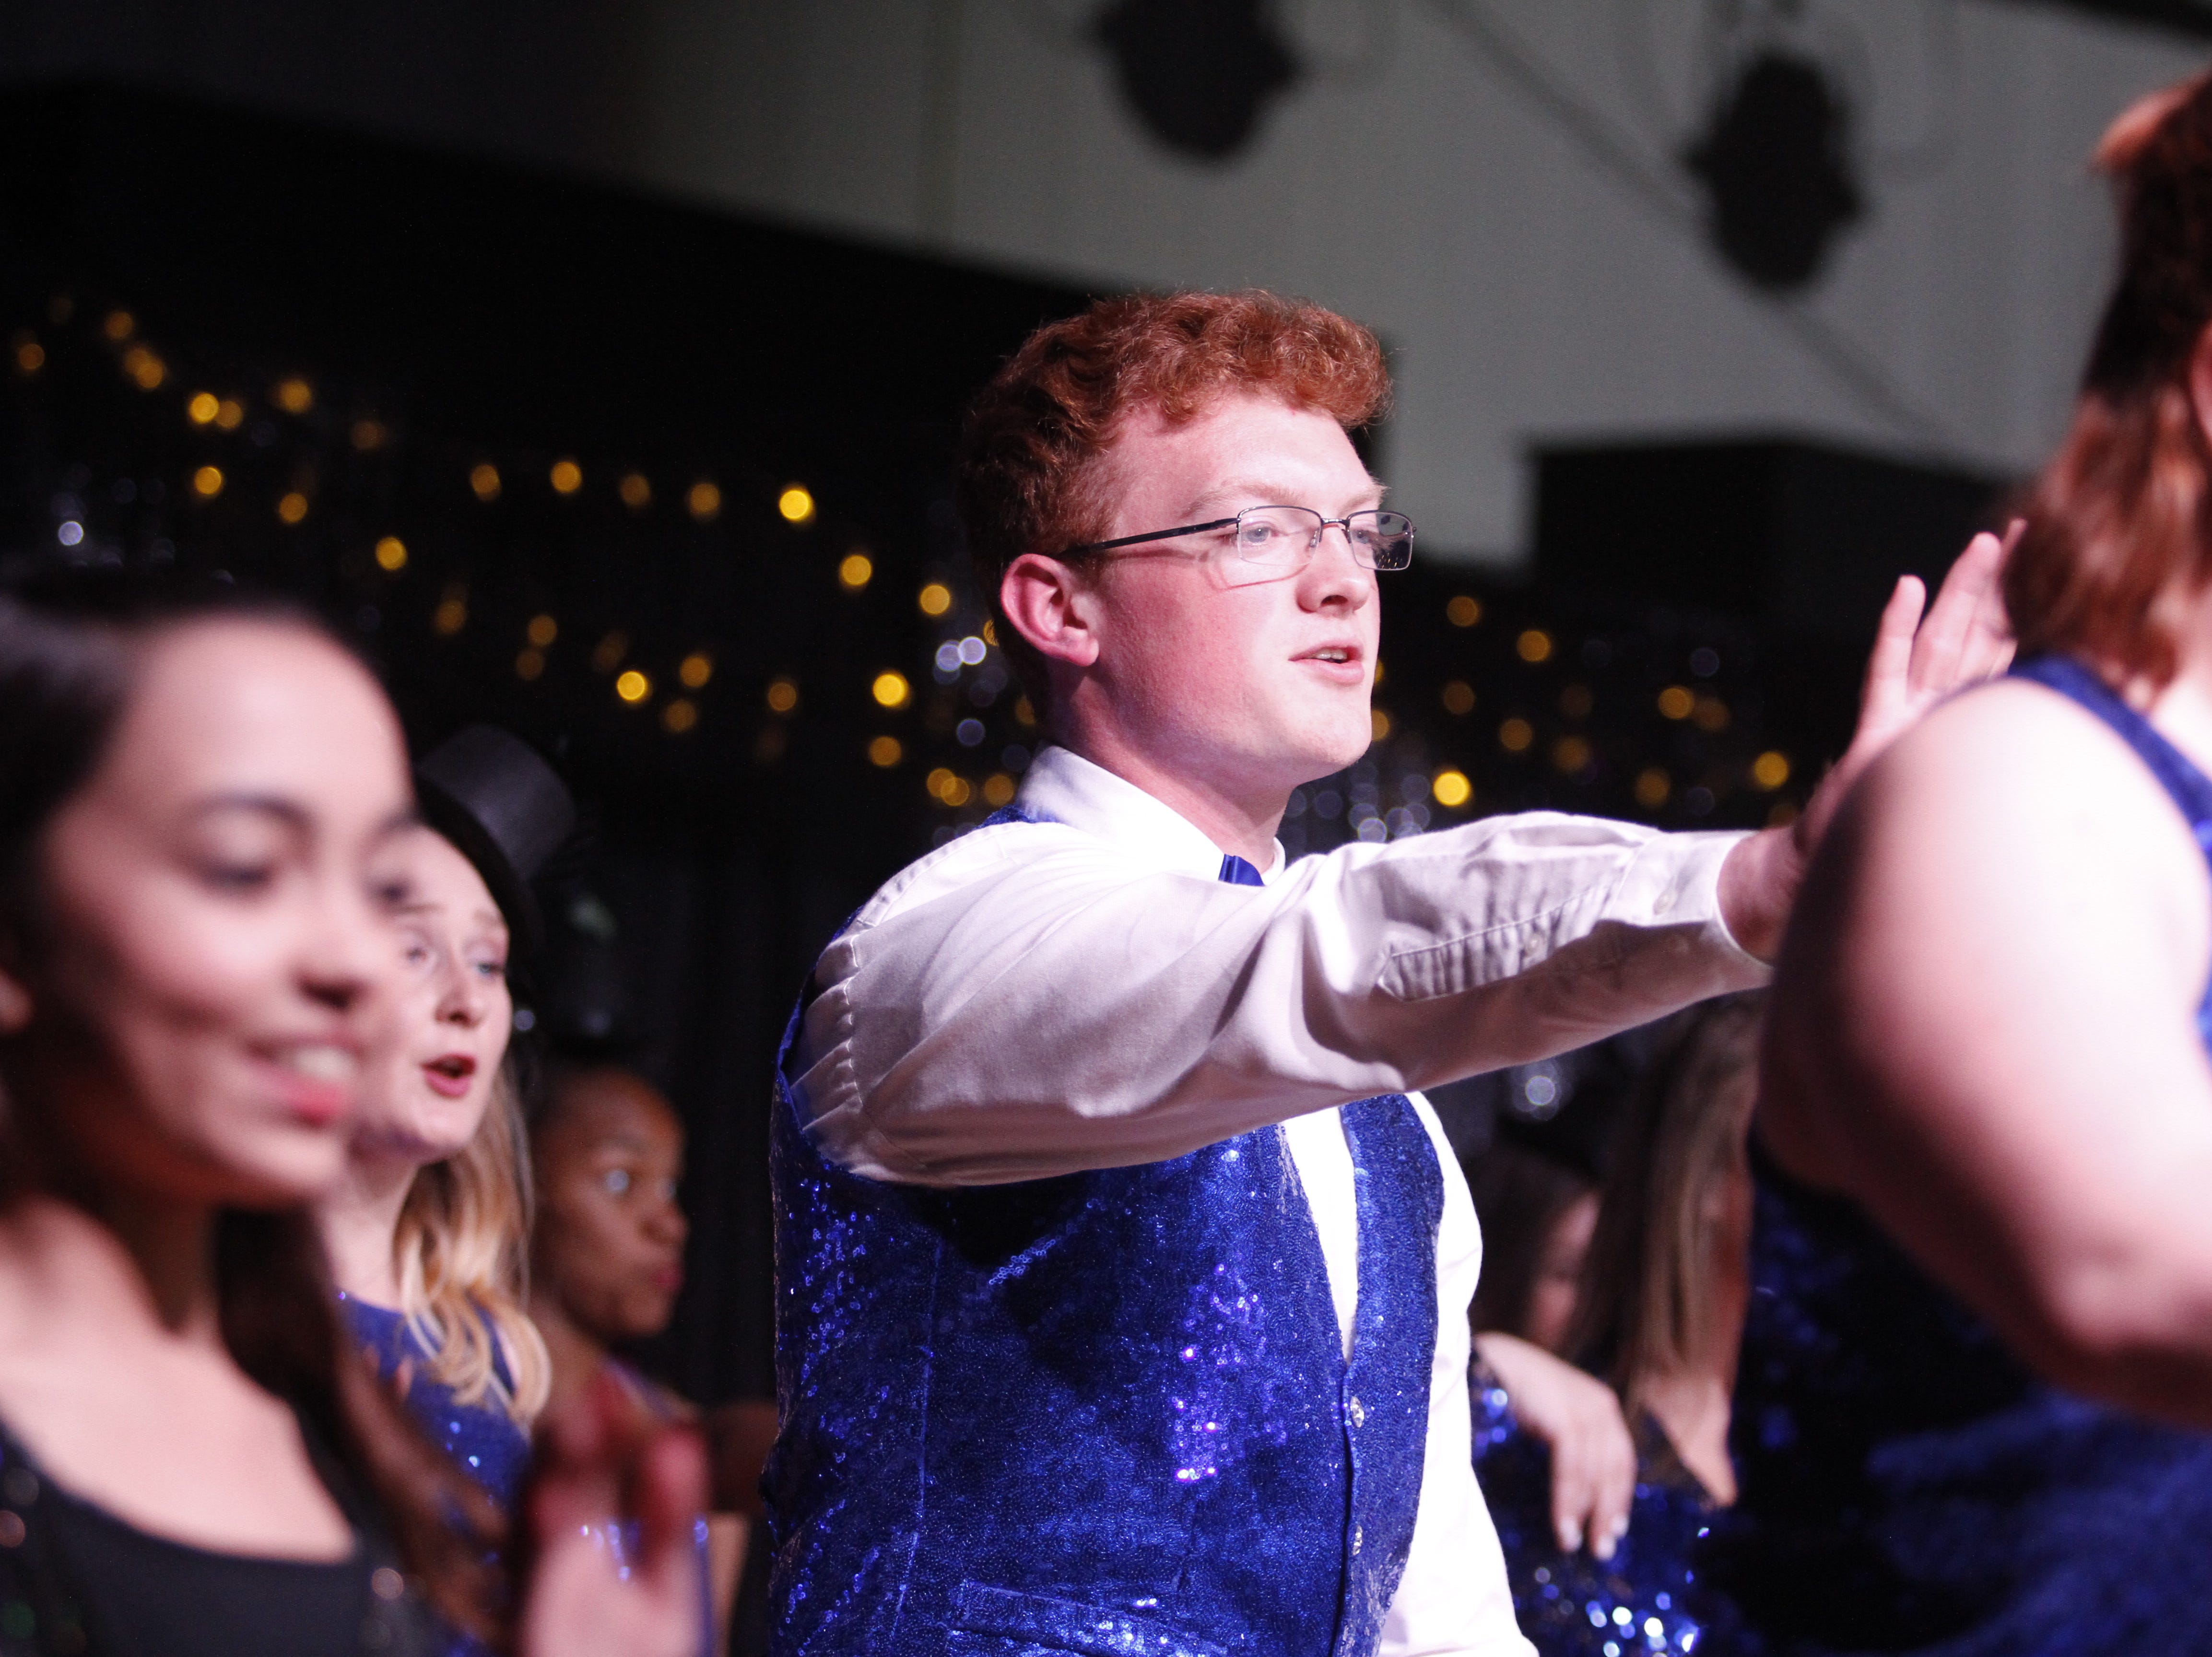 Zach Mullins performing at Clarksville Academy's Steak Dinner on Saturday, April 13, 2019.